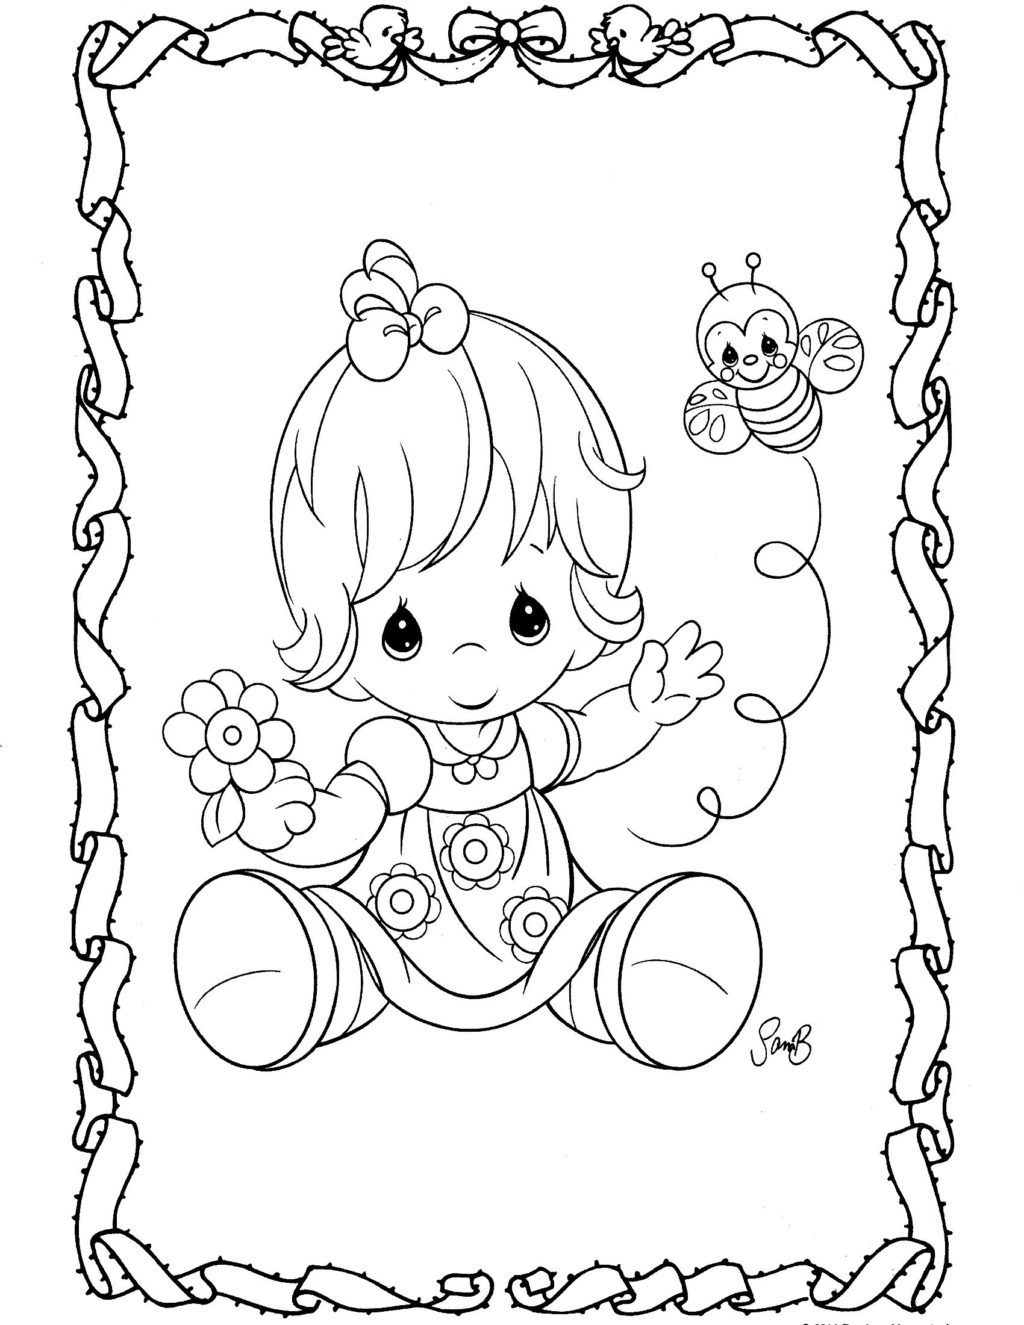 Precious Moments Baby Coloring Pages Coloring Book World Coloring Book World Precious Moments Pages